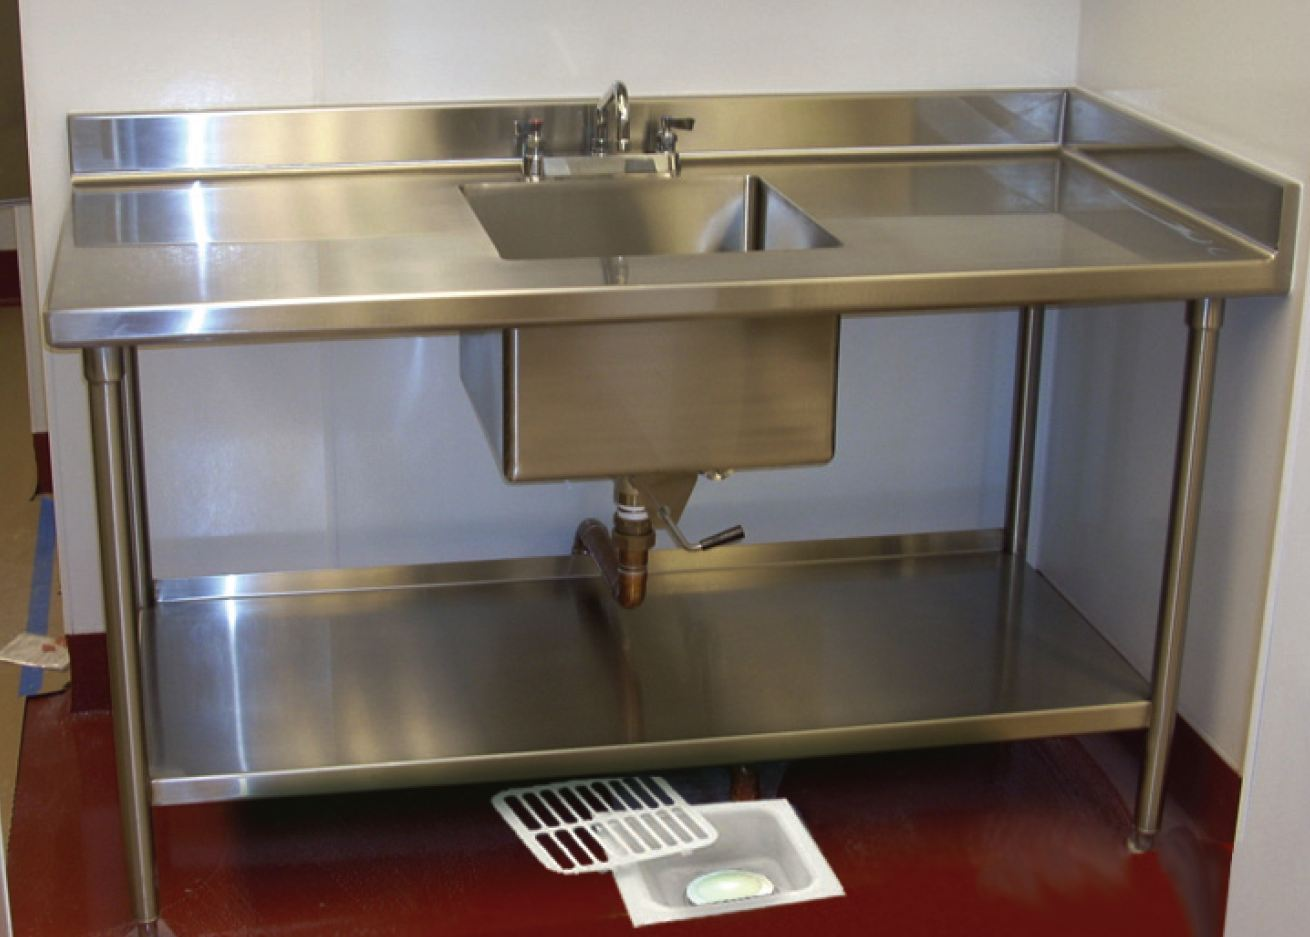 Restaurant Kitchen Sink floor sink defender - eliminate fruit flies, odors, and grease